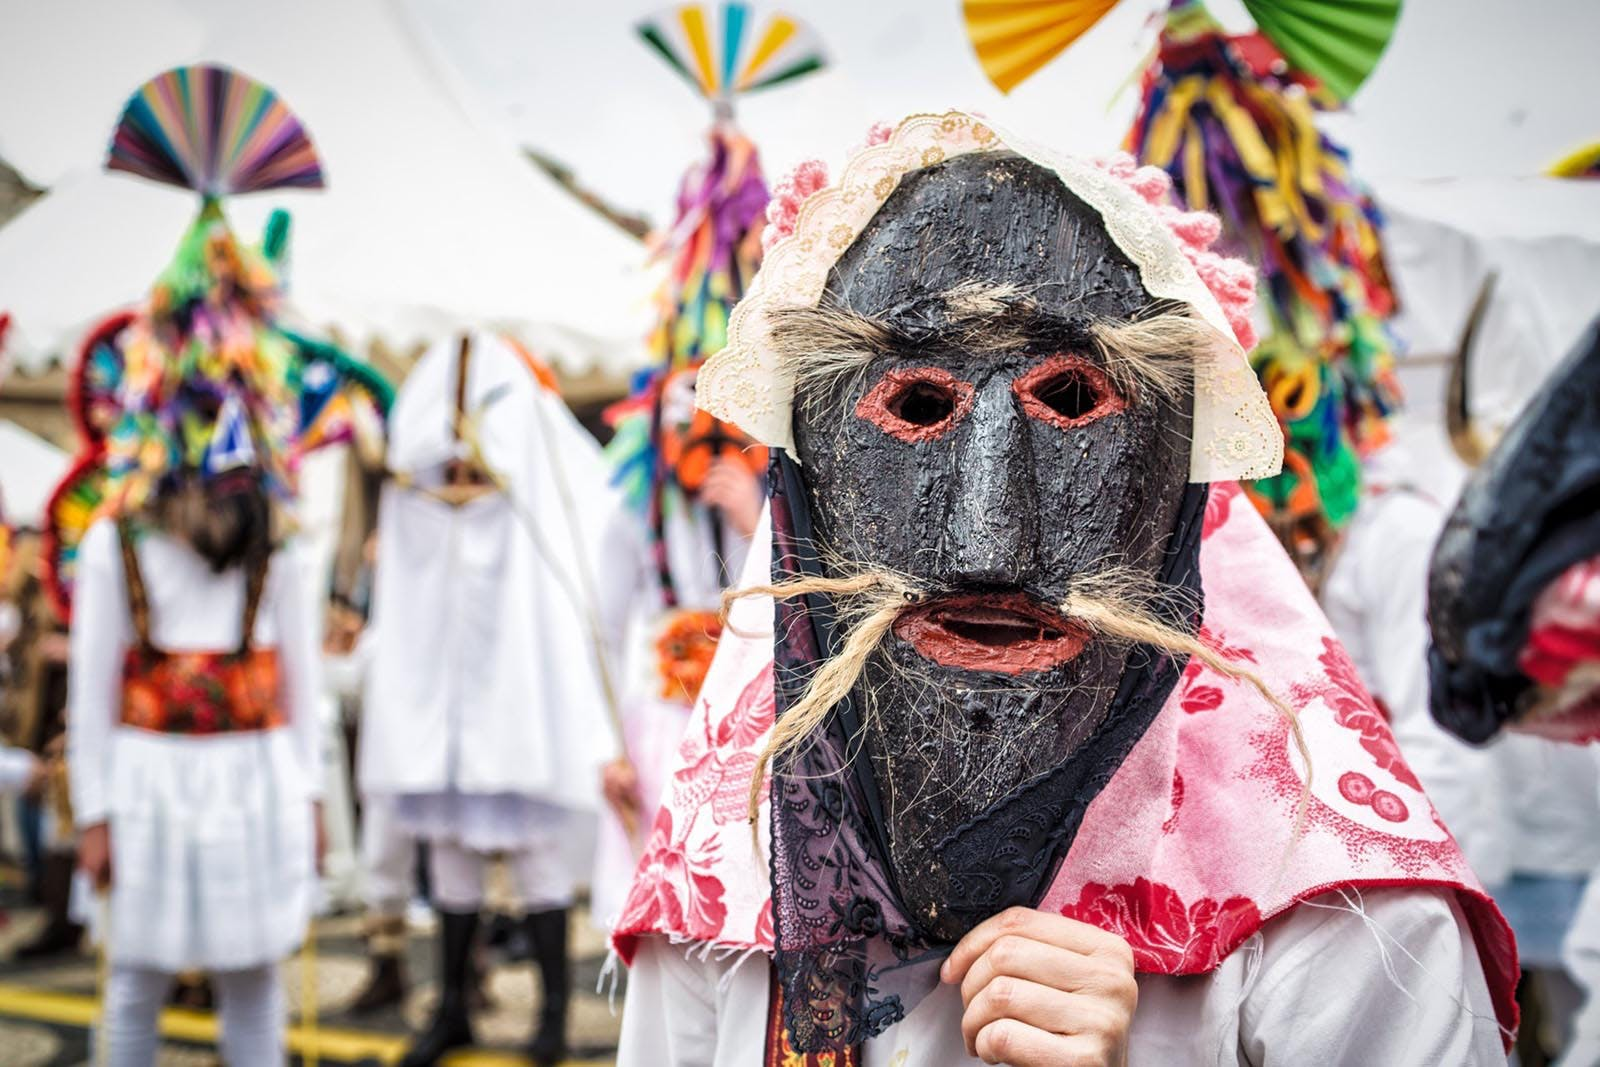 Masked entertainer at one of the top Portuguese events, the Festival of the Iberian Mask in Lisbon.